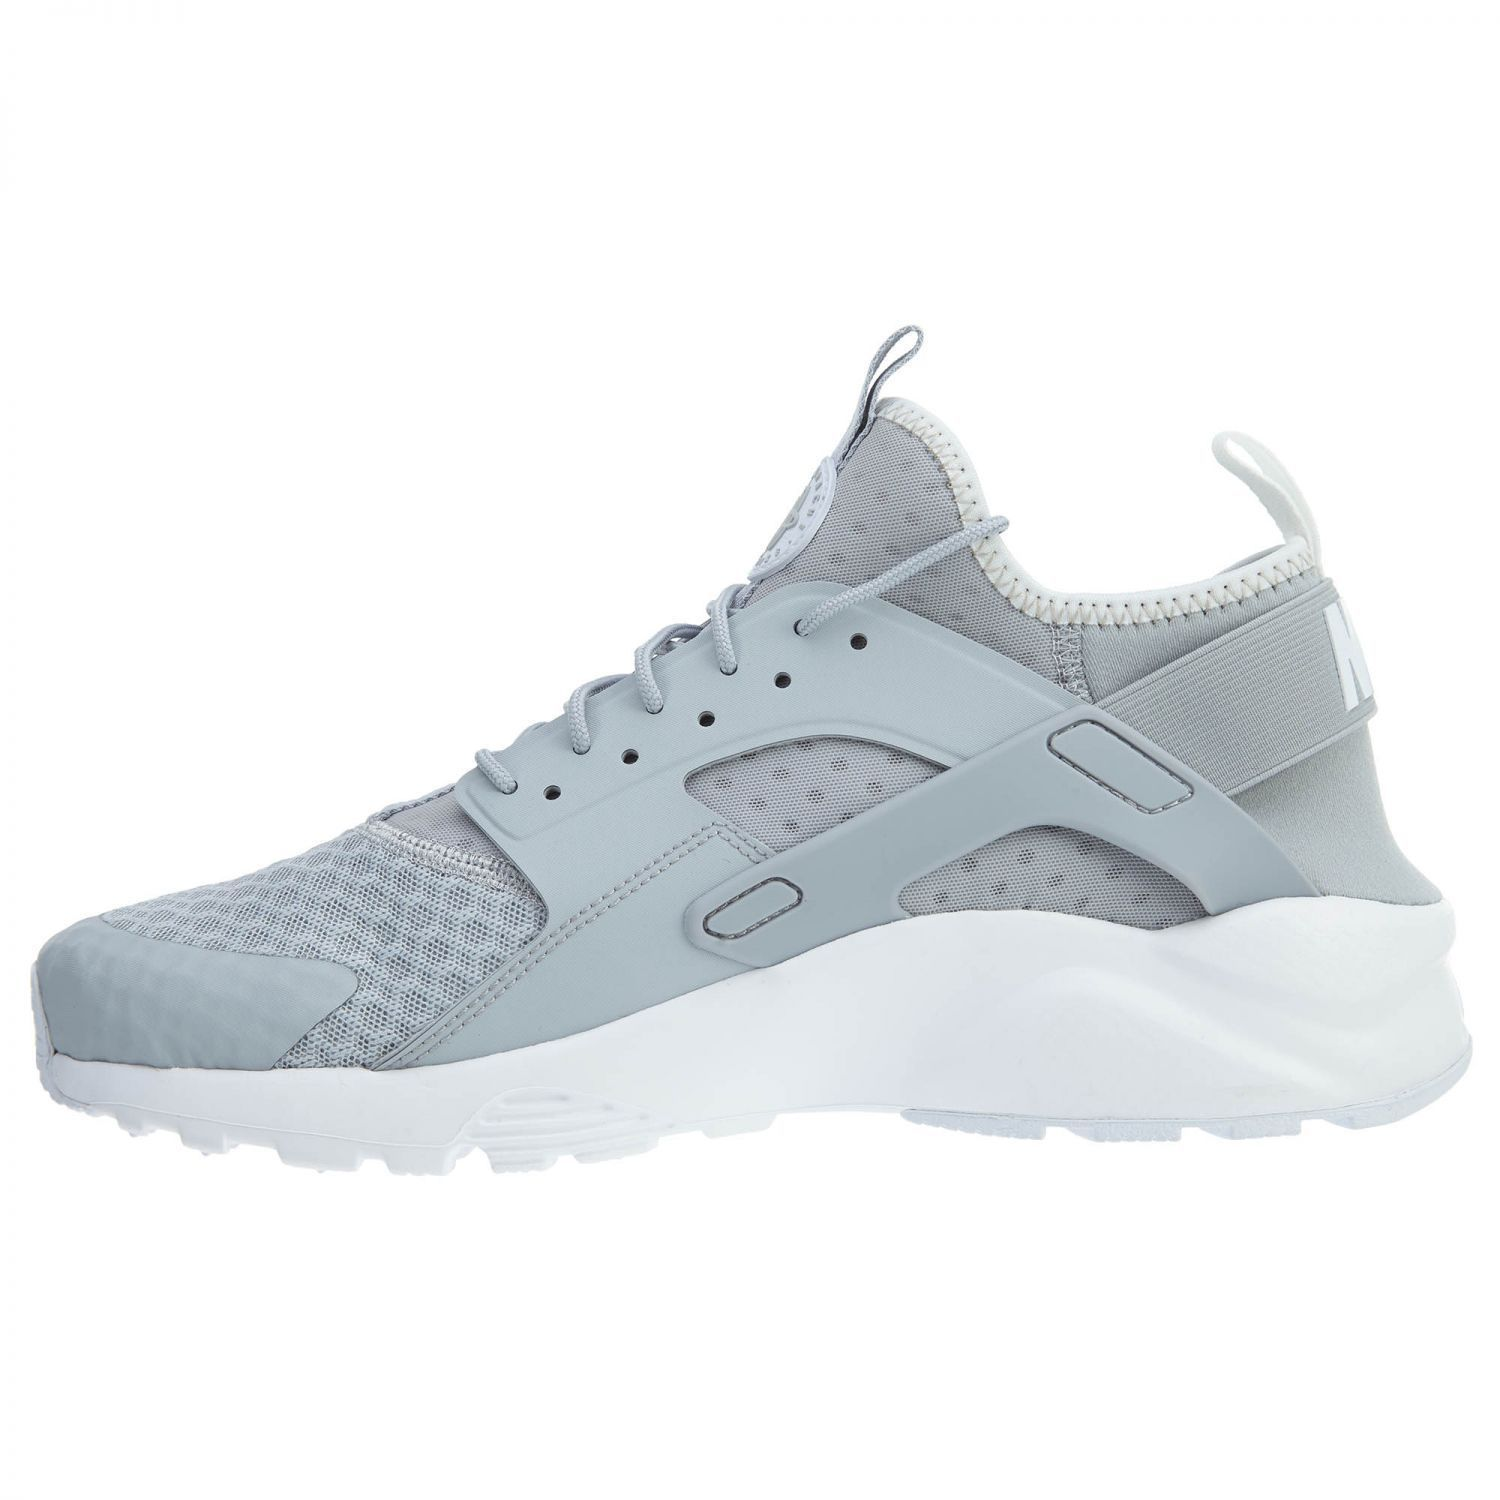 low priced 1fe89 638d8 Nike Men s Air Huarache Run Ultra Shoes Size 7 to 13 us 819685 007